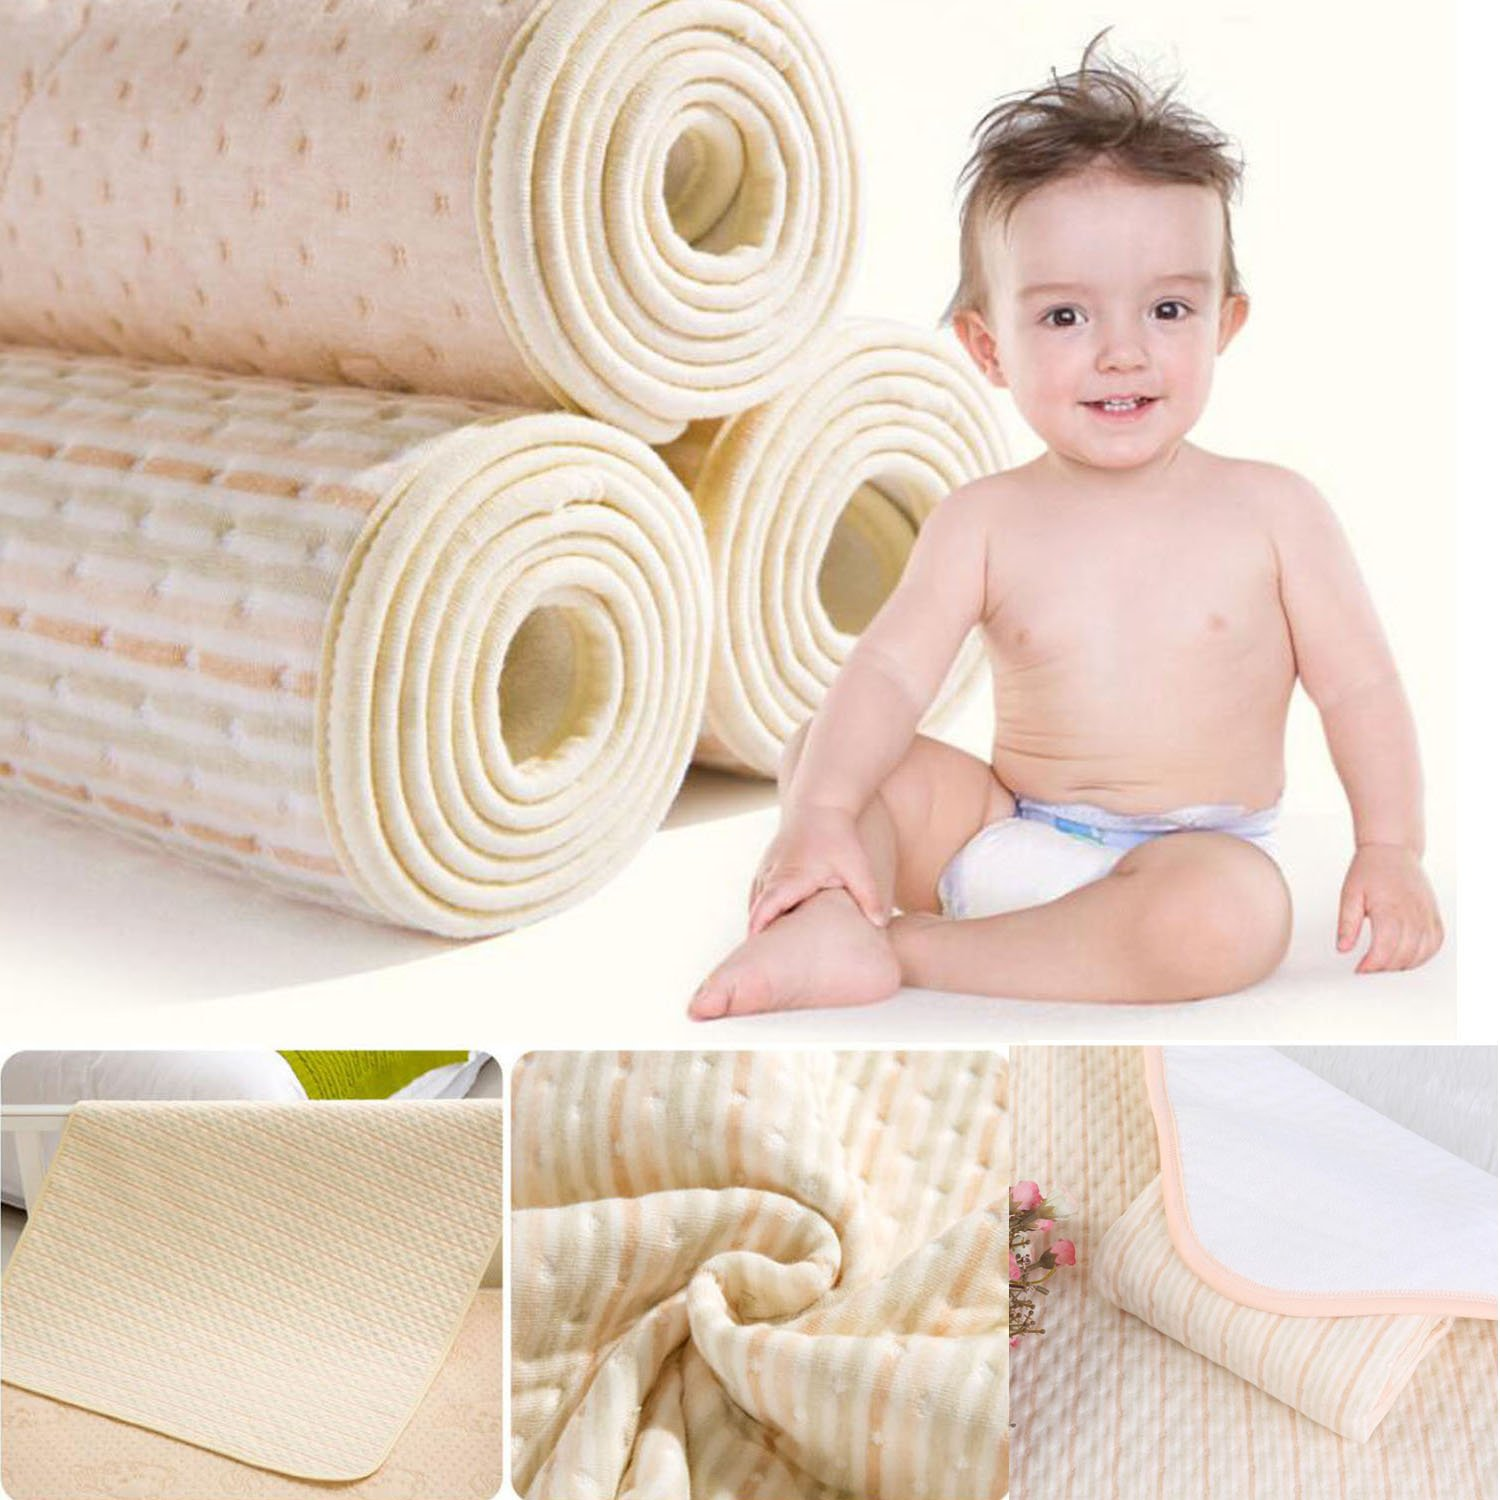 Infant Bamboo Fiber Waterproof Changing Pad - Natural Organic Cotton Mattress Pad Cover - Reusable Portable Changing Mat for Home and Travel (XXL (39.4 x 47.2 Inch), Brown & Green & White Stripes) Jerrybaby